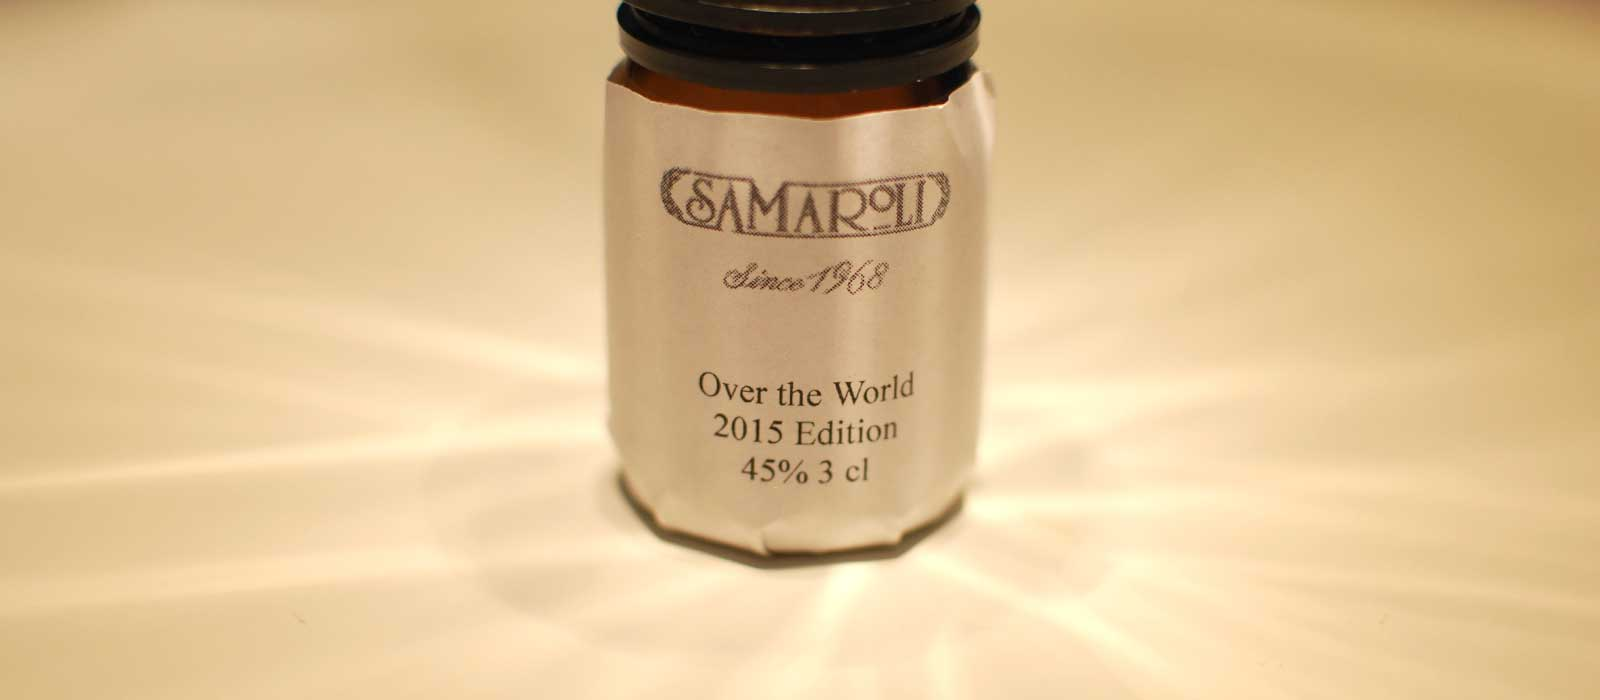 Nionde plats 2016: Samaroli Over the World 2015 Edition